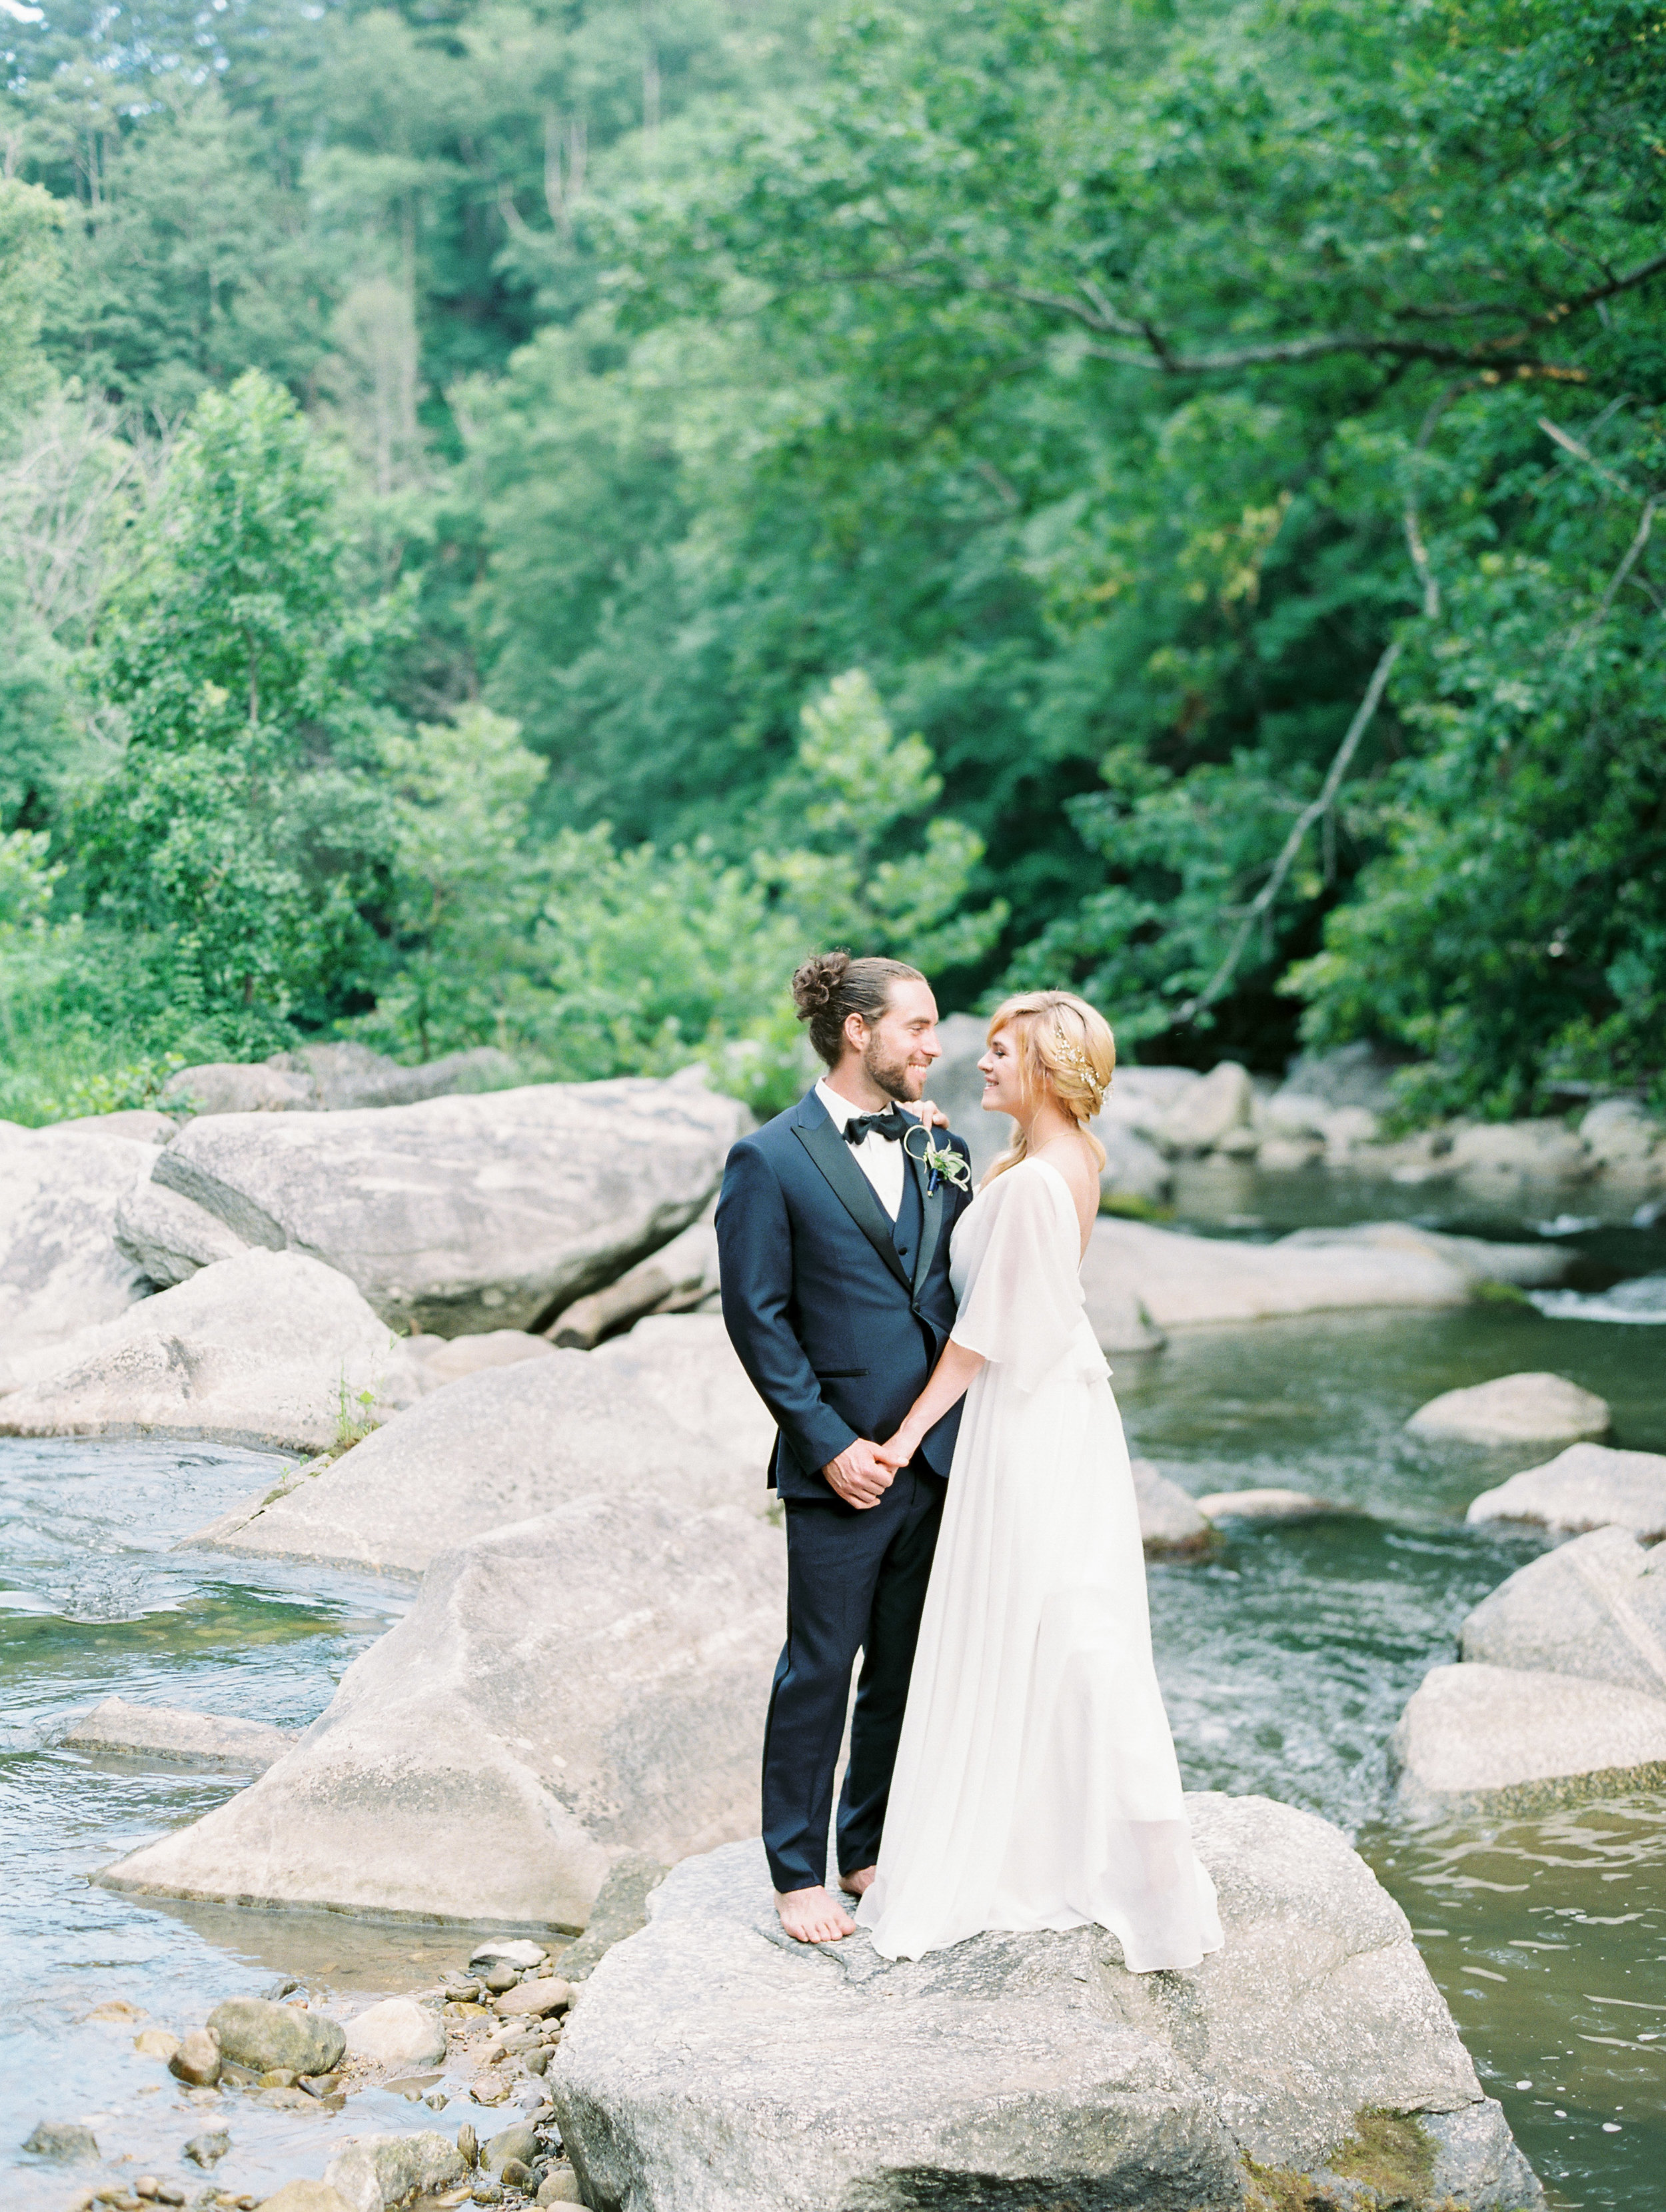 Destination wedding in North Carolina